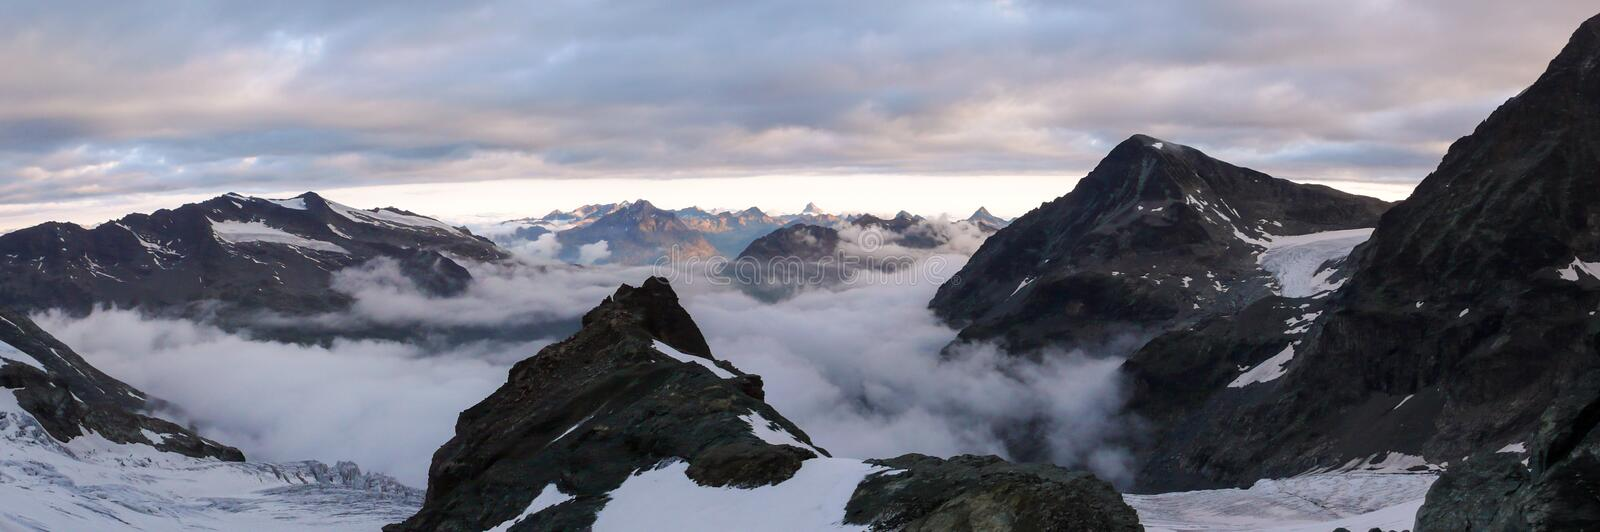 Mountain panorama landscape of the Bernina mountains and glaciers in the Swiss Alps near St. Moritz on a dark and ominous morning royalty free stock photo